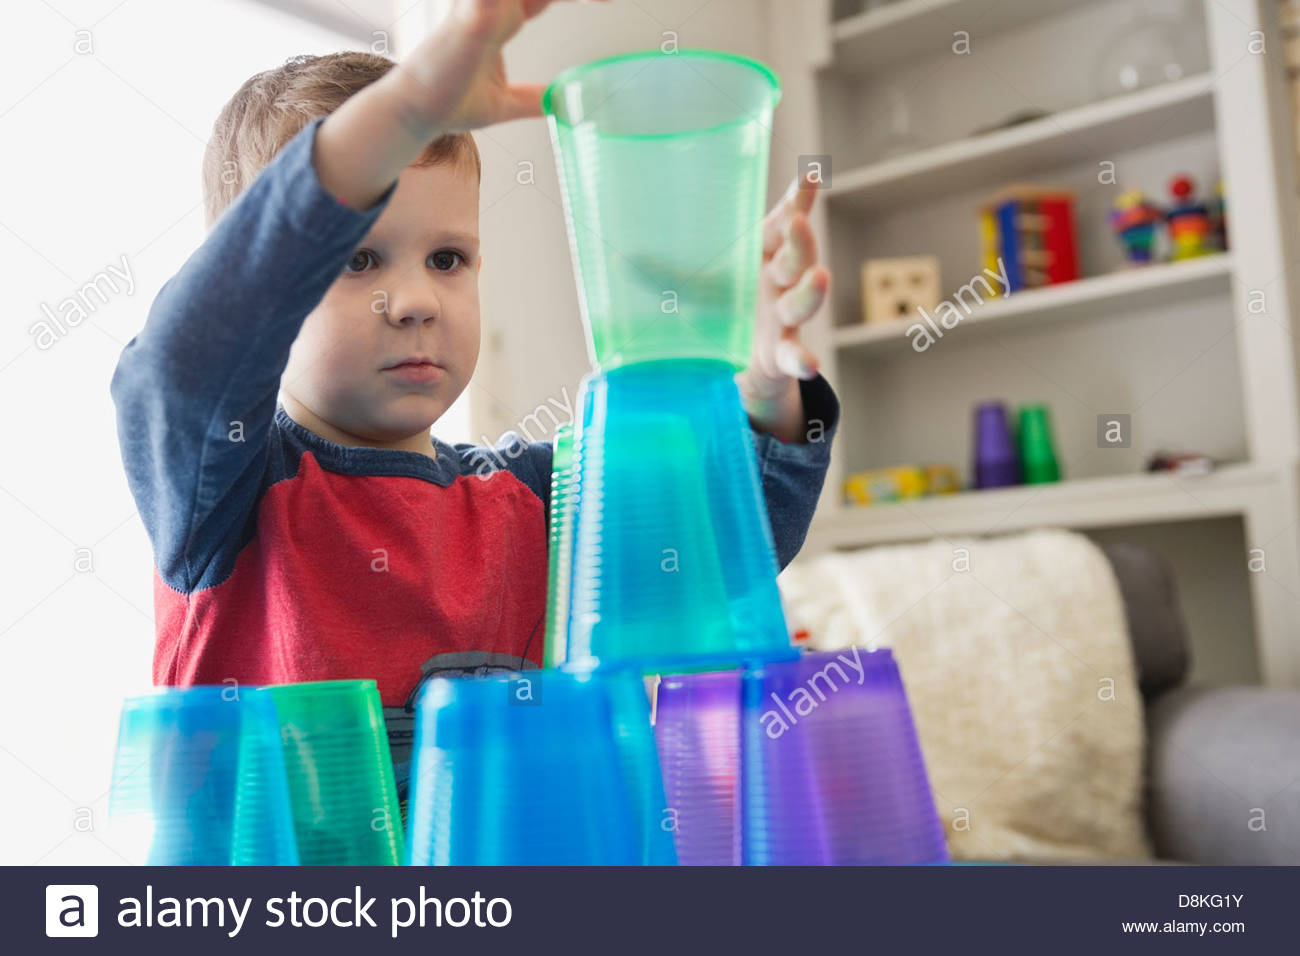 Boy playing with plastic cups at home - Stock Image